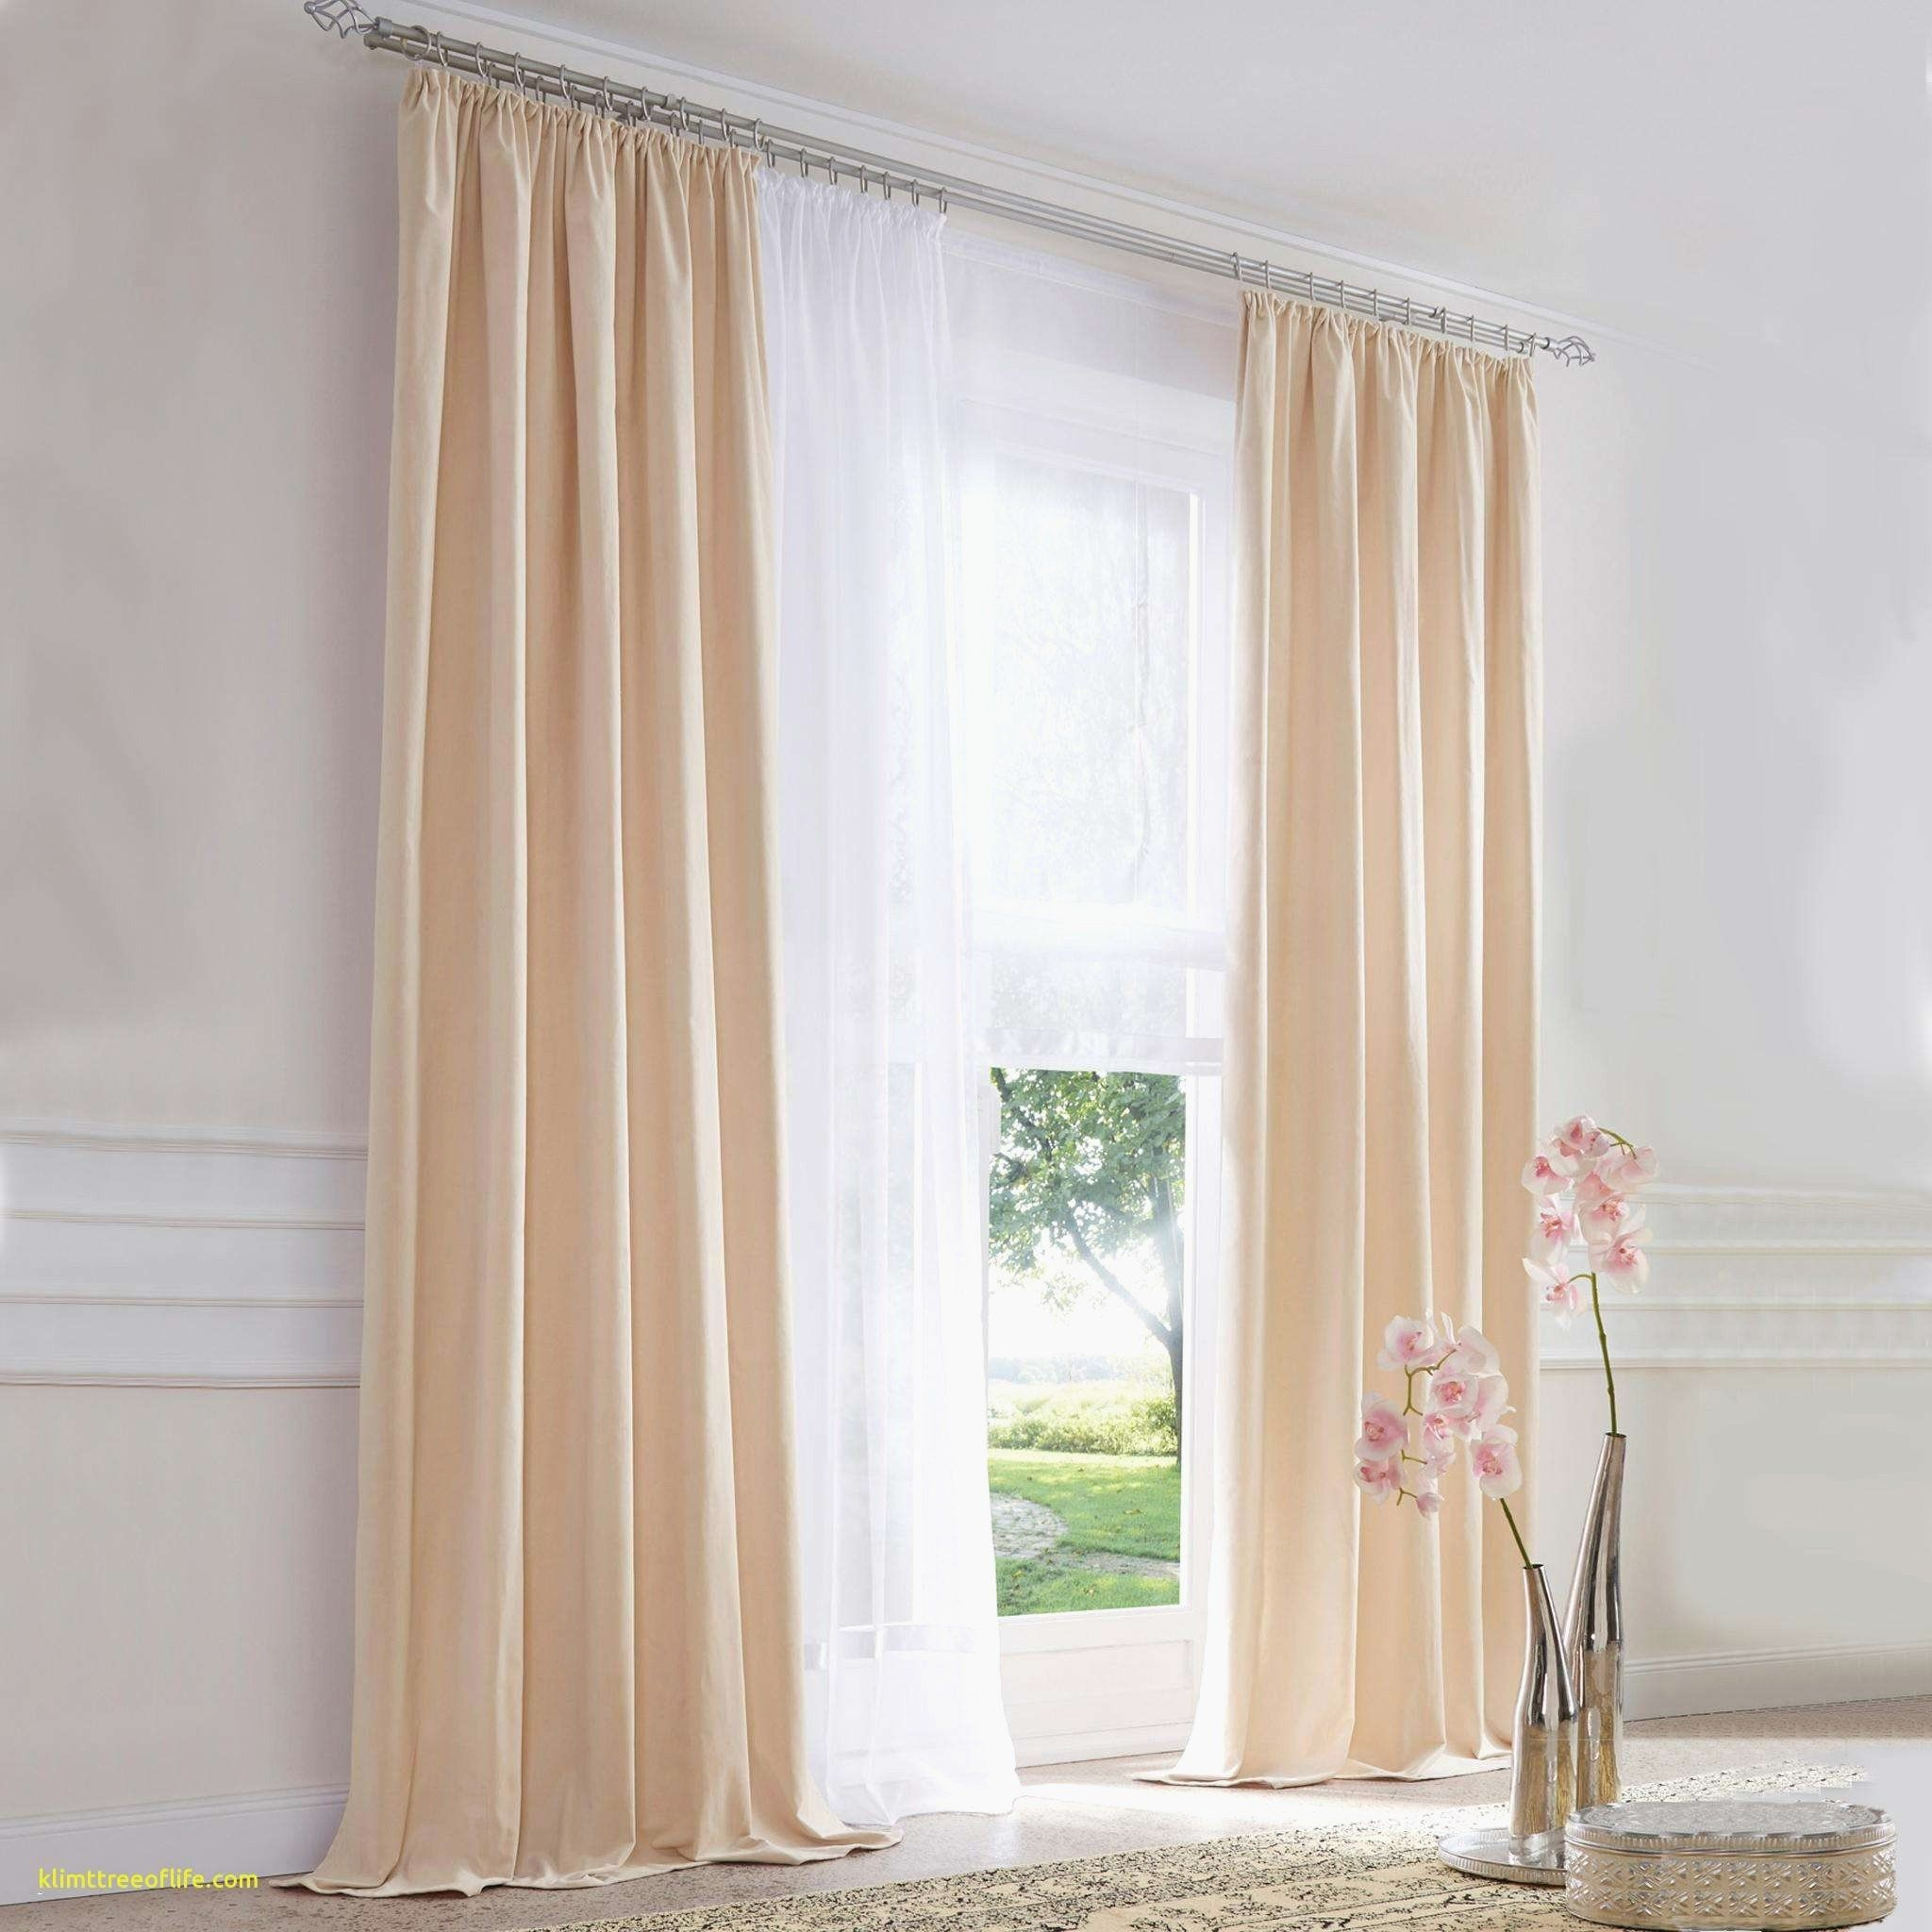 Curtain Decoration Ideas Inspirational Curtain Decoration Ideas In